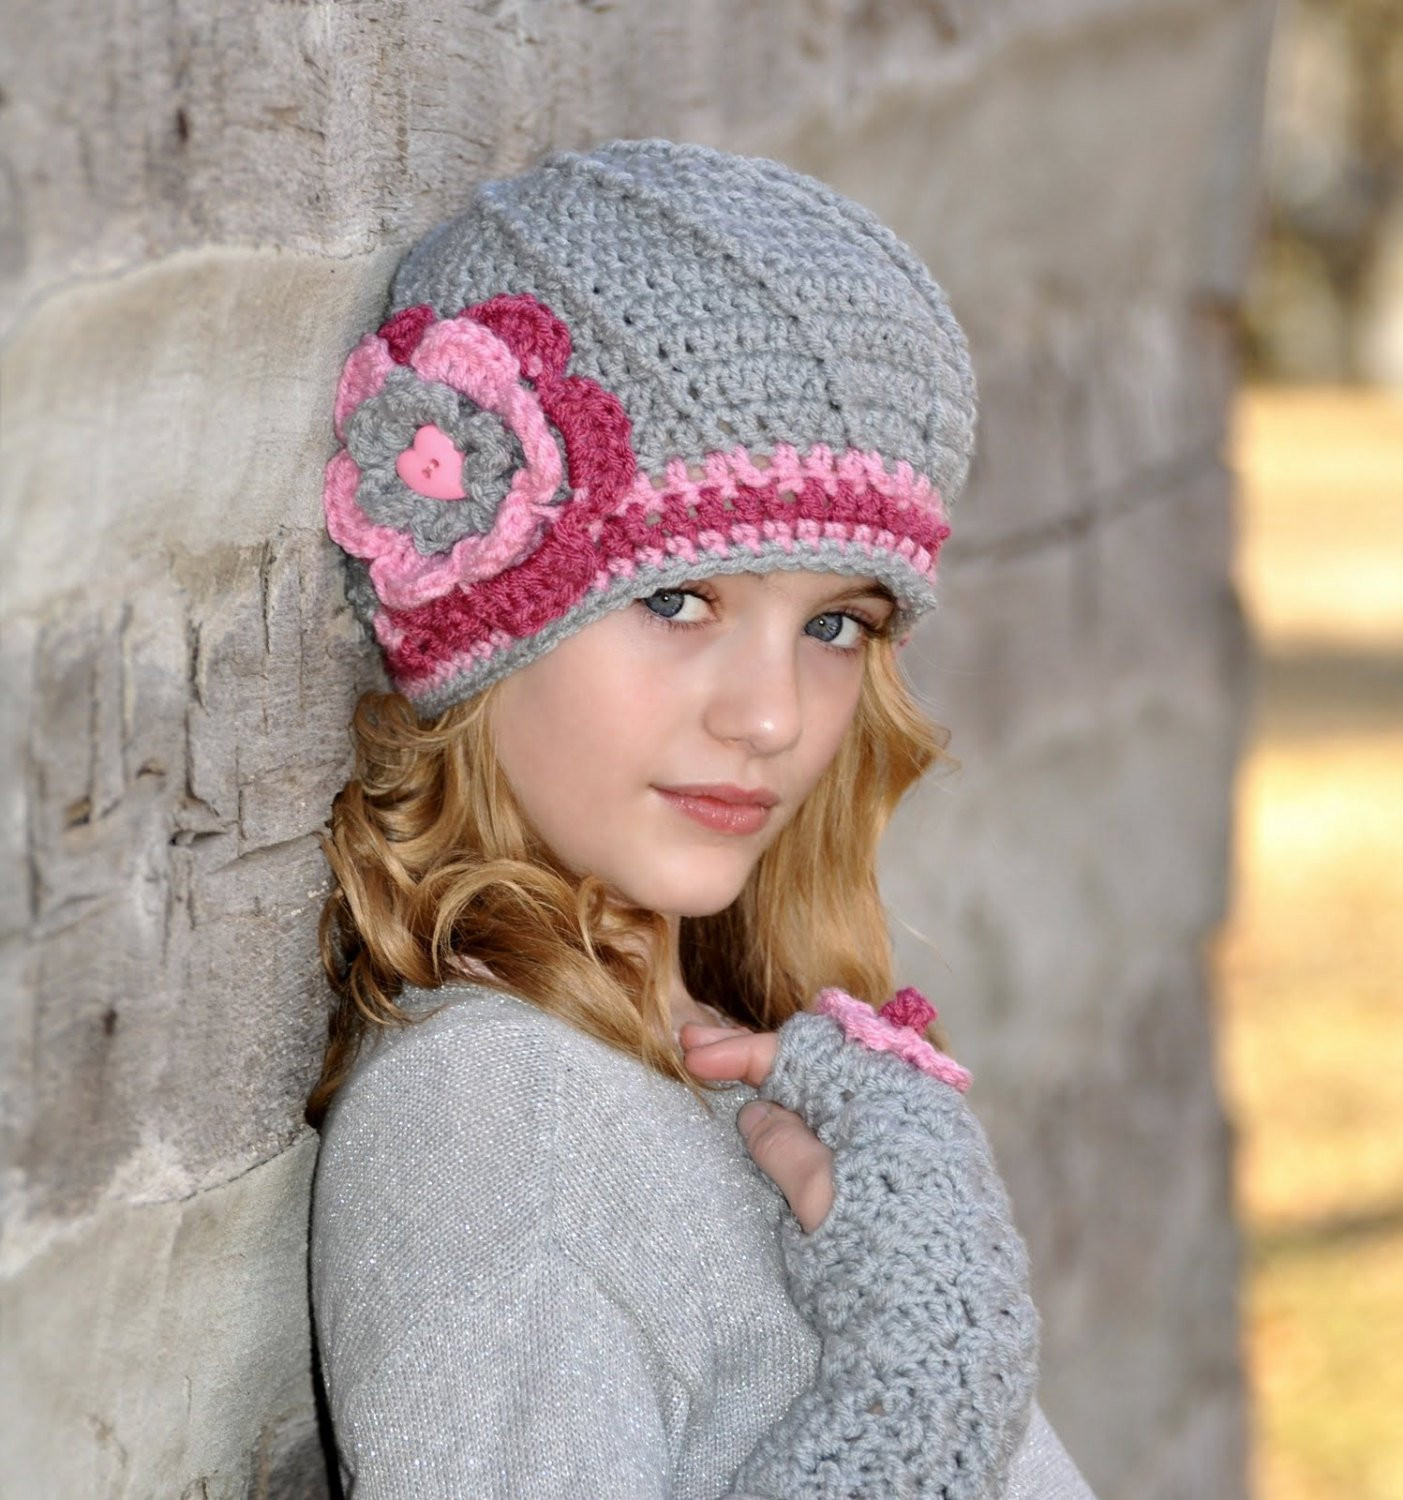 Crochet Girl Hat Inspirational Crochet Hat for Tween Girls Pink and Grey Gray Slouchy Hat Of Superb 47 Pics Crochet Girl Hat